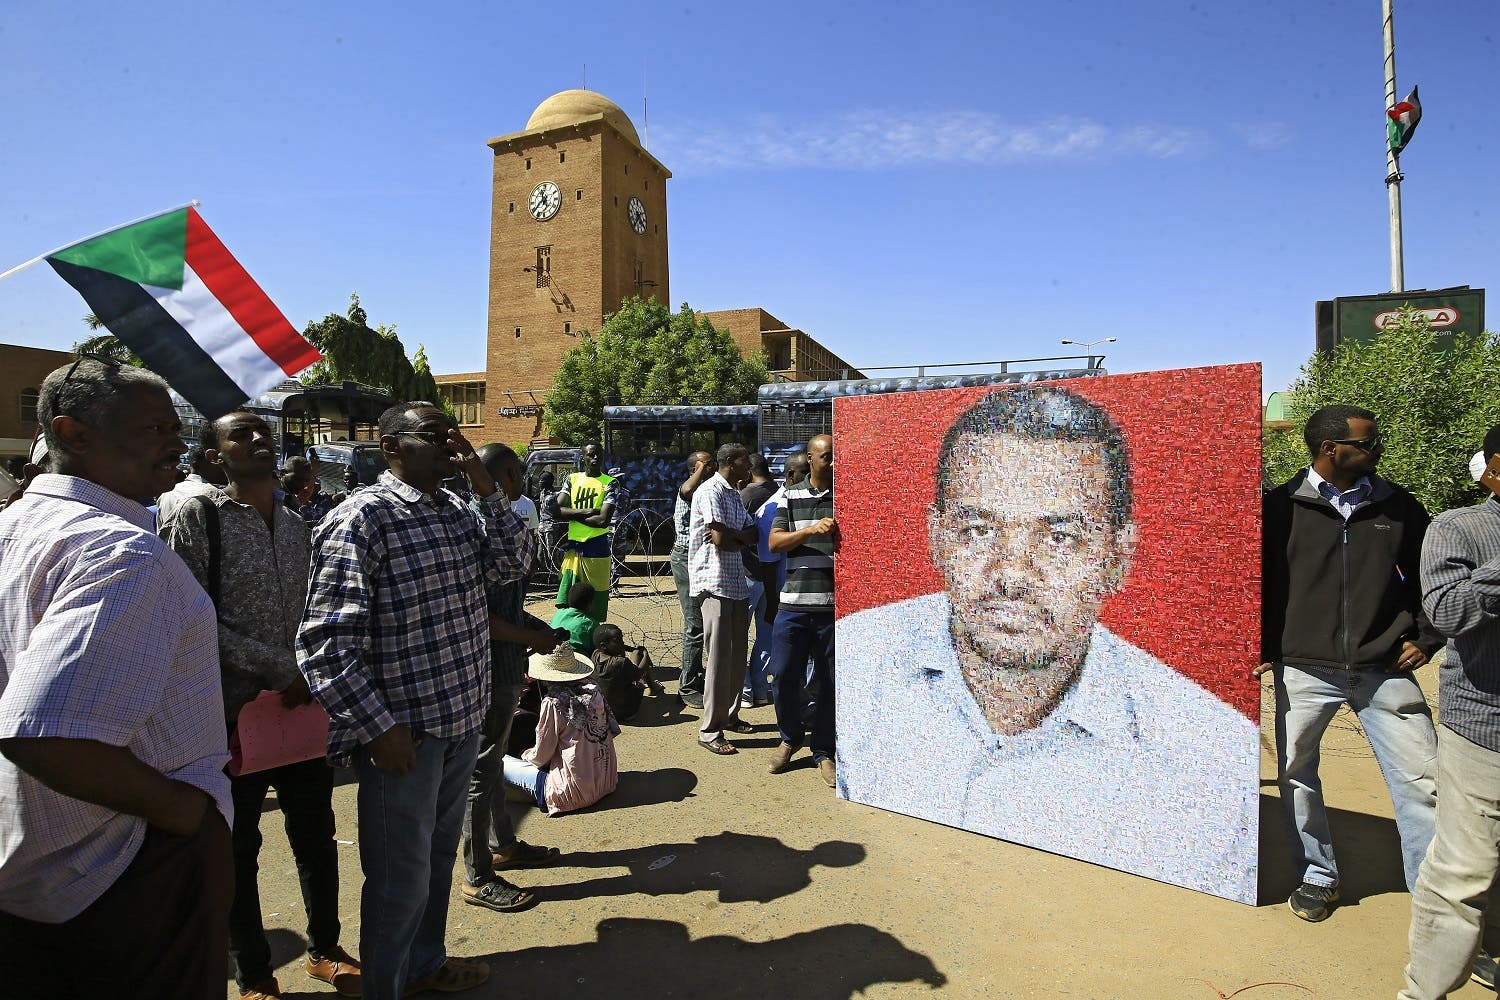 Sudanese protesters rally in front of a court in Omdurman near the capital Khartoum, on December 30, 2019, during the trial of intelligence agents for the death of teacher Ahmed Al-Khair (picture) while in custody of intelligence services. The court sentenced 27 intelligence agents to death by hanging, for torturing and killing the teacher at an intelligence services facility during protests a year ago, judge Sadok Albdelrahman said. (Photo: AFP)